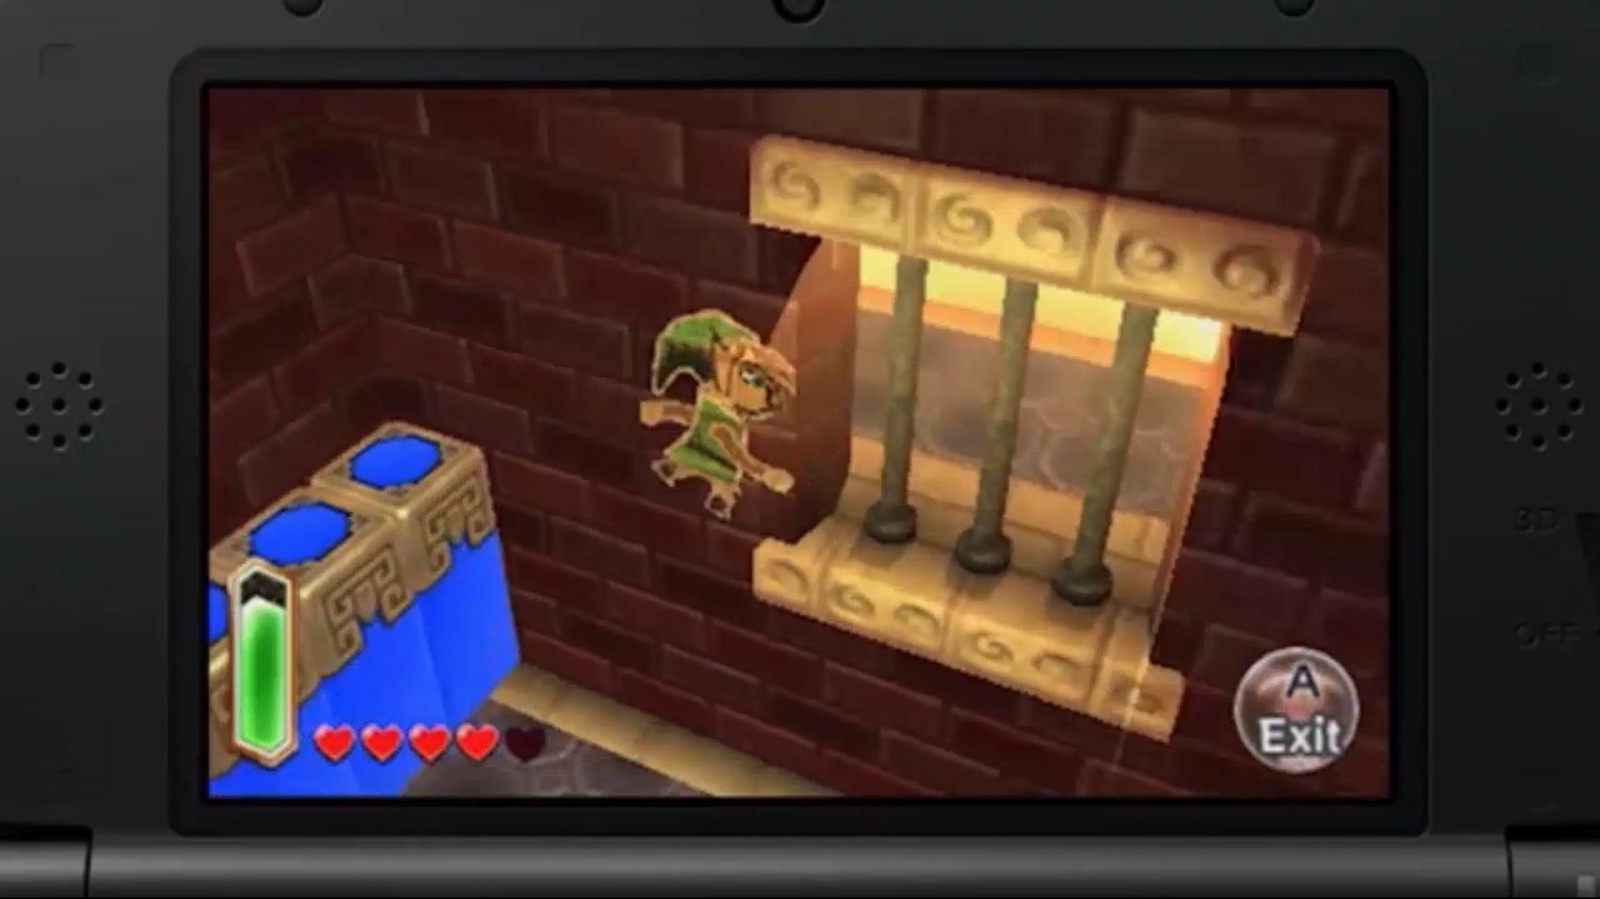 Nintendo Direct - Zelda Link To The Past 2D Window